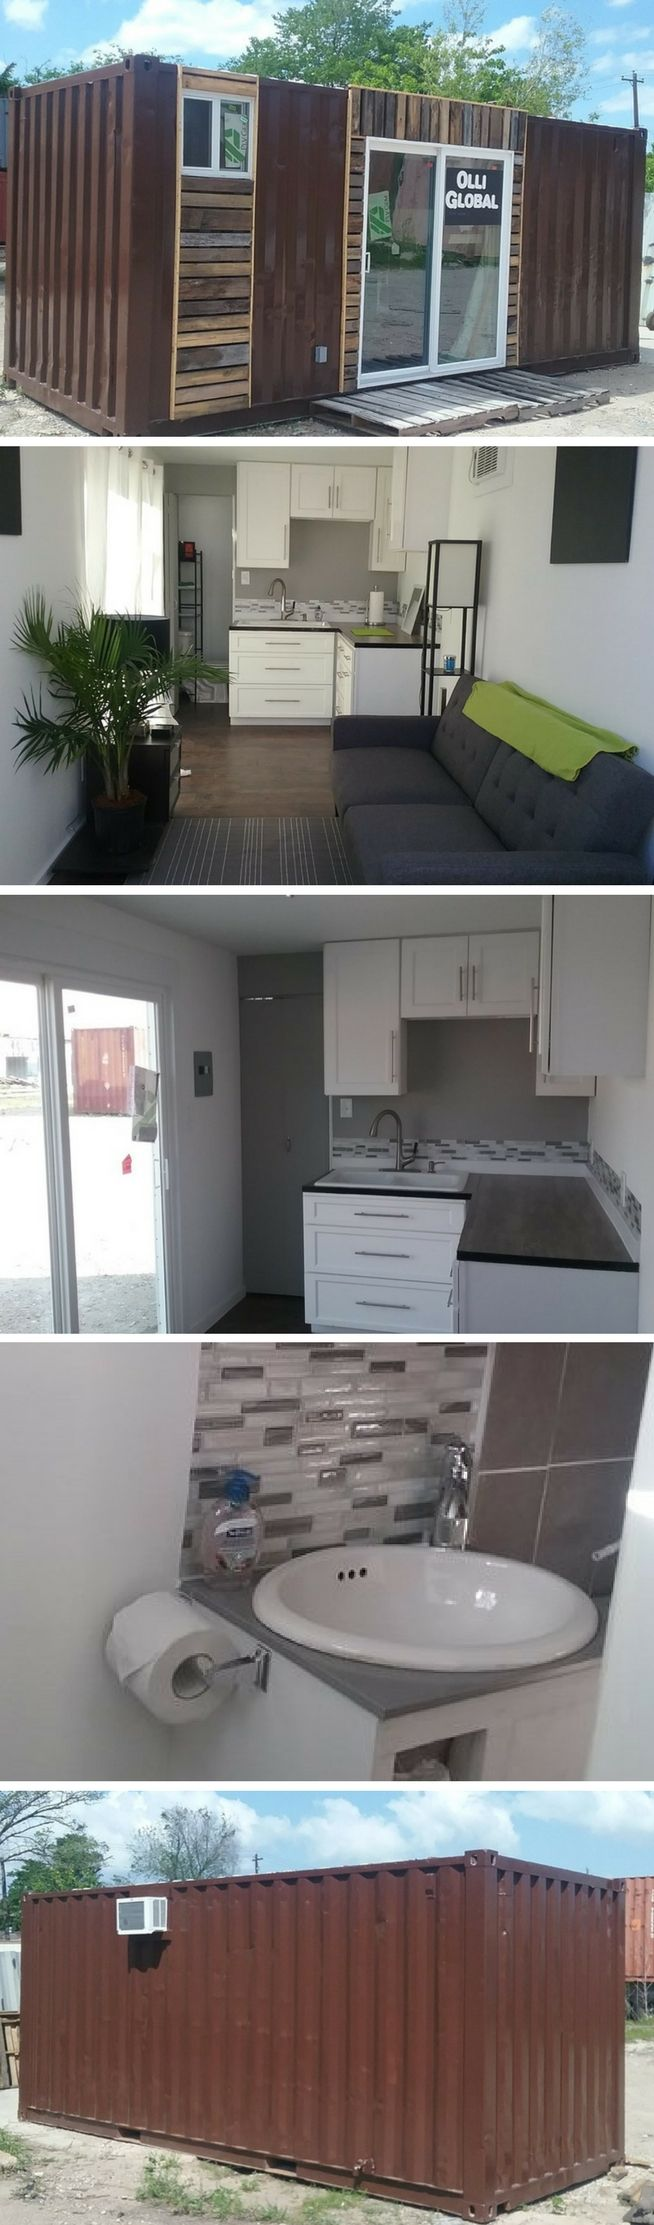 20′ SHIPPING CONTAINER HOME